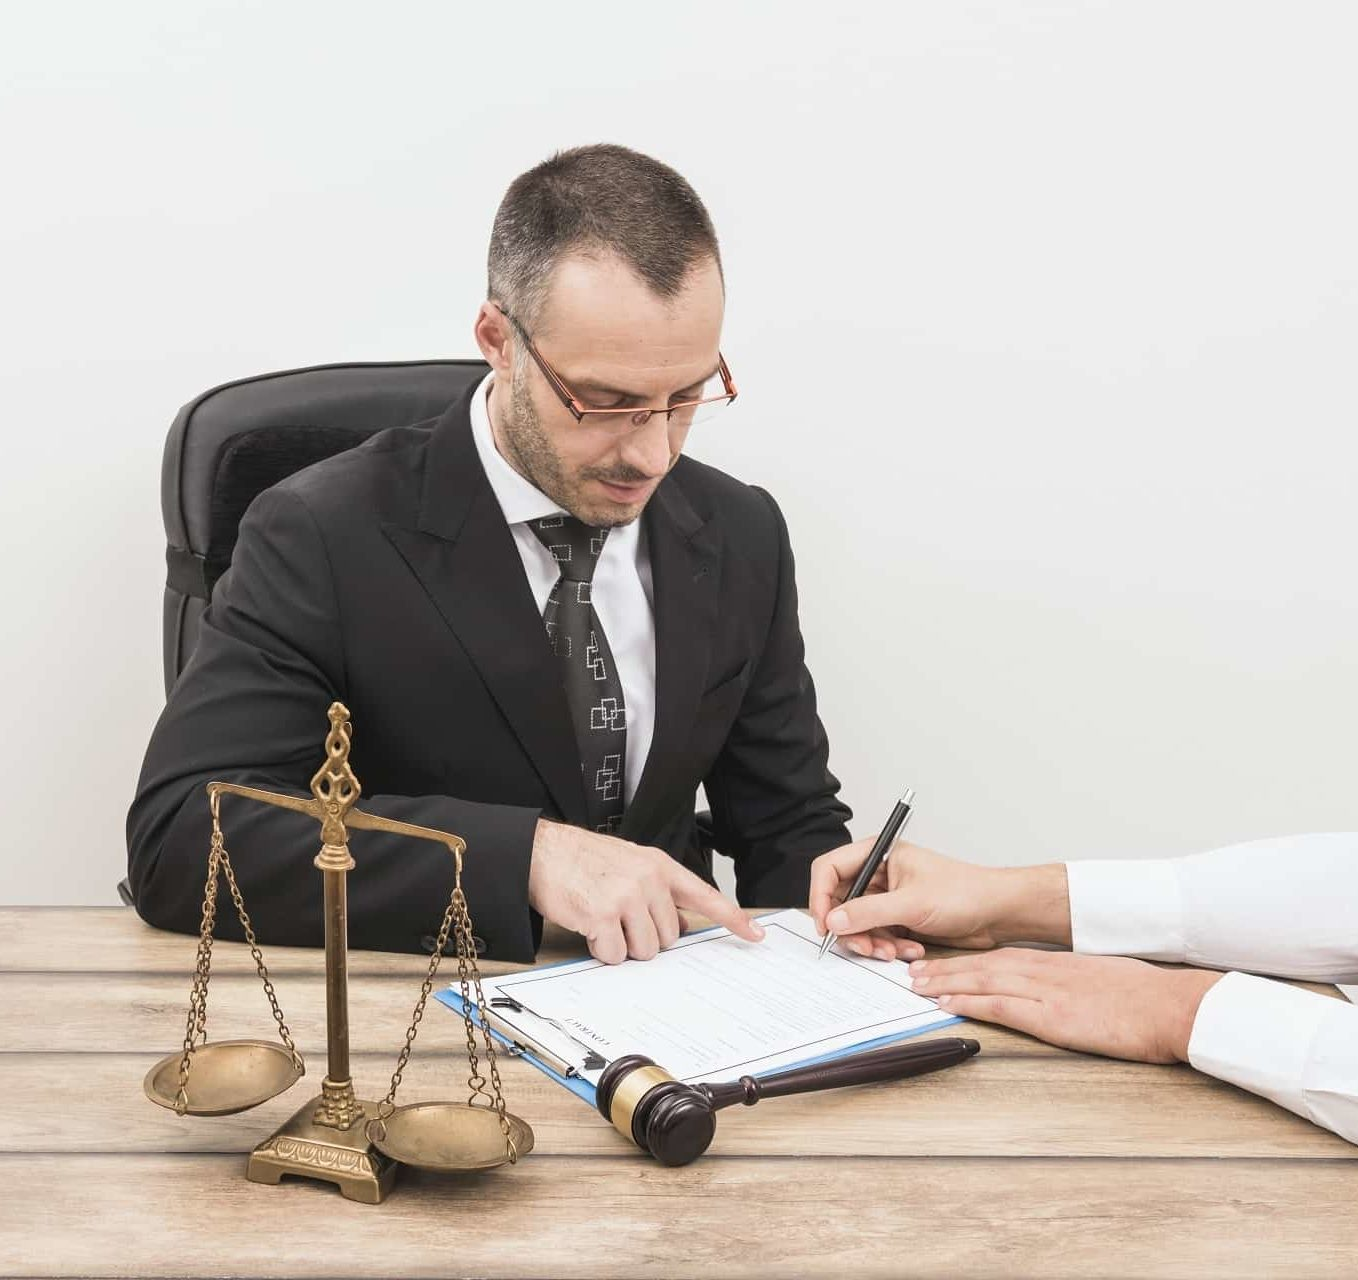 About Timeshare Attorneys